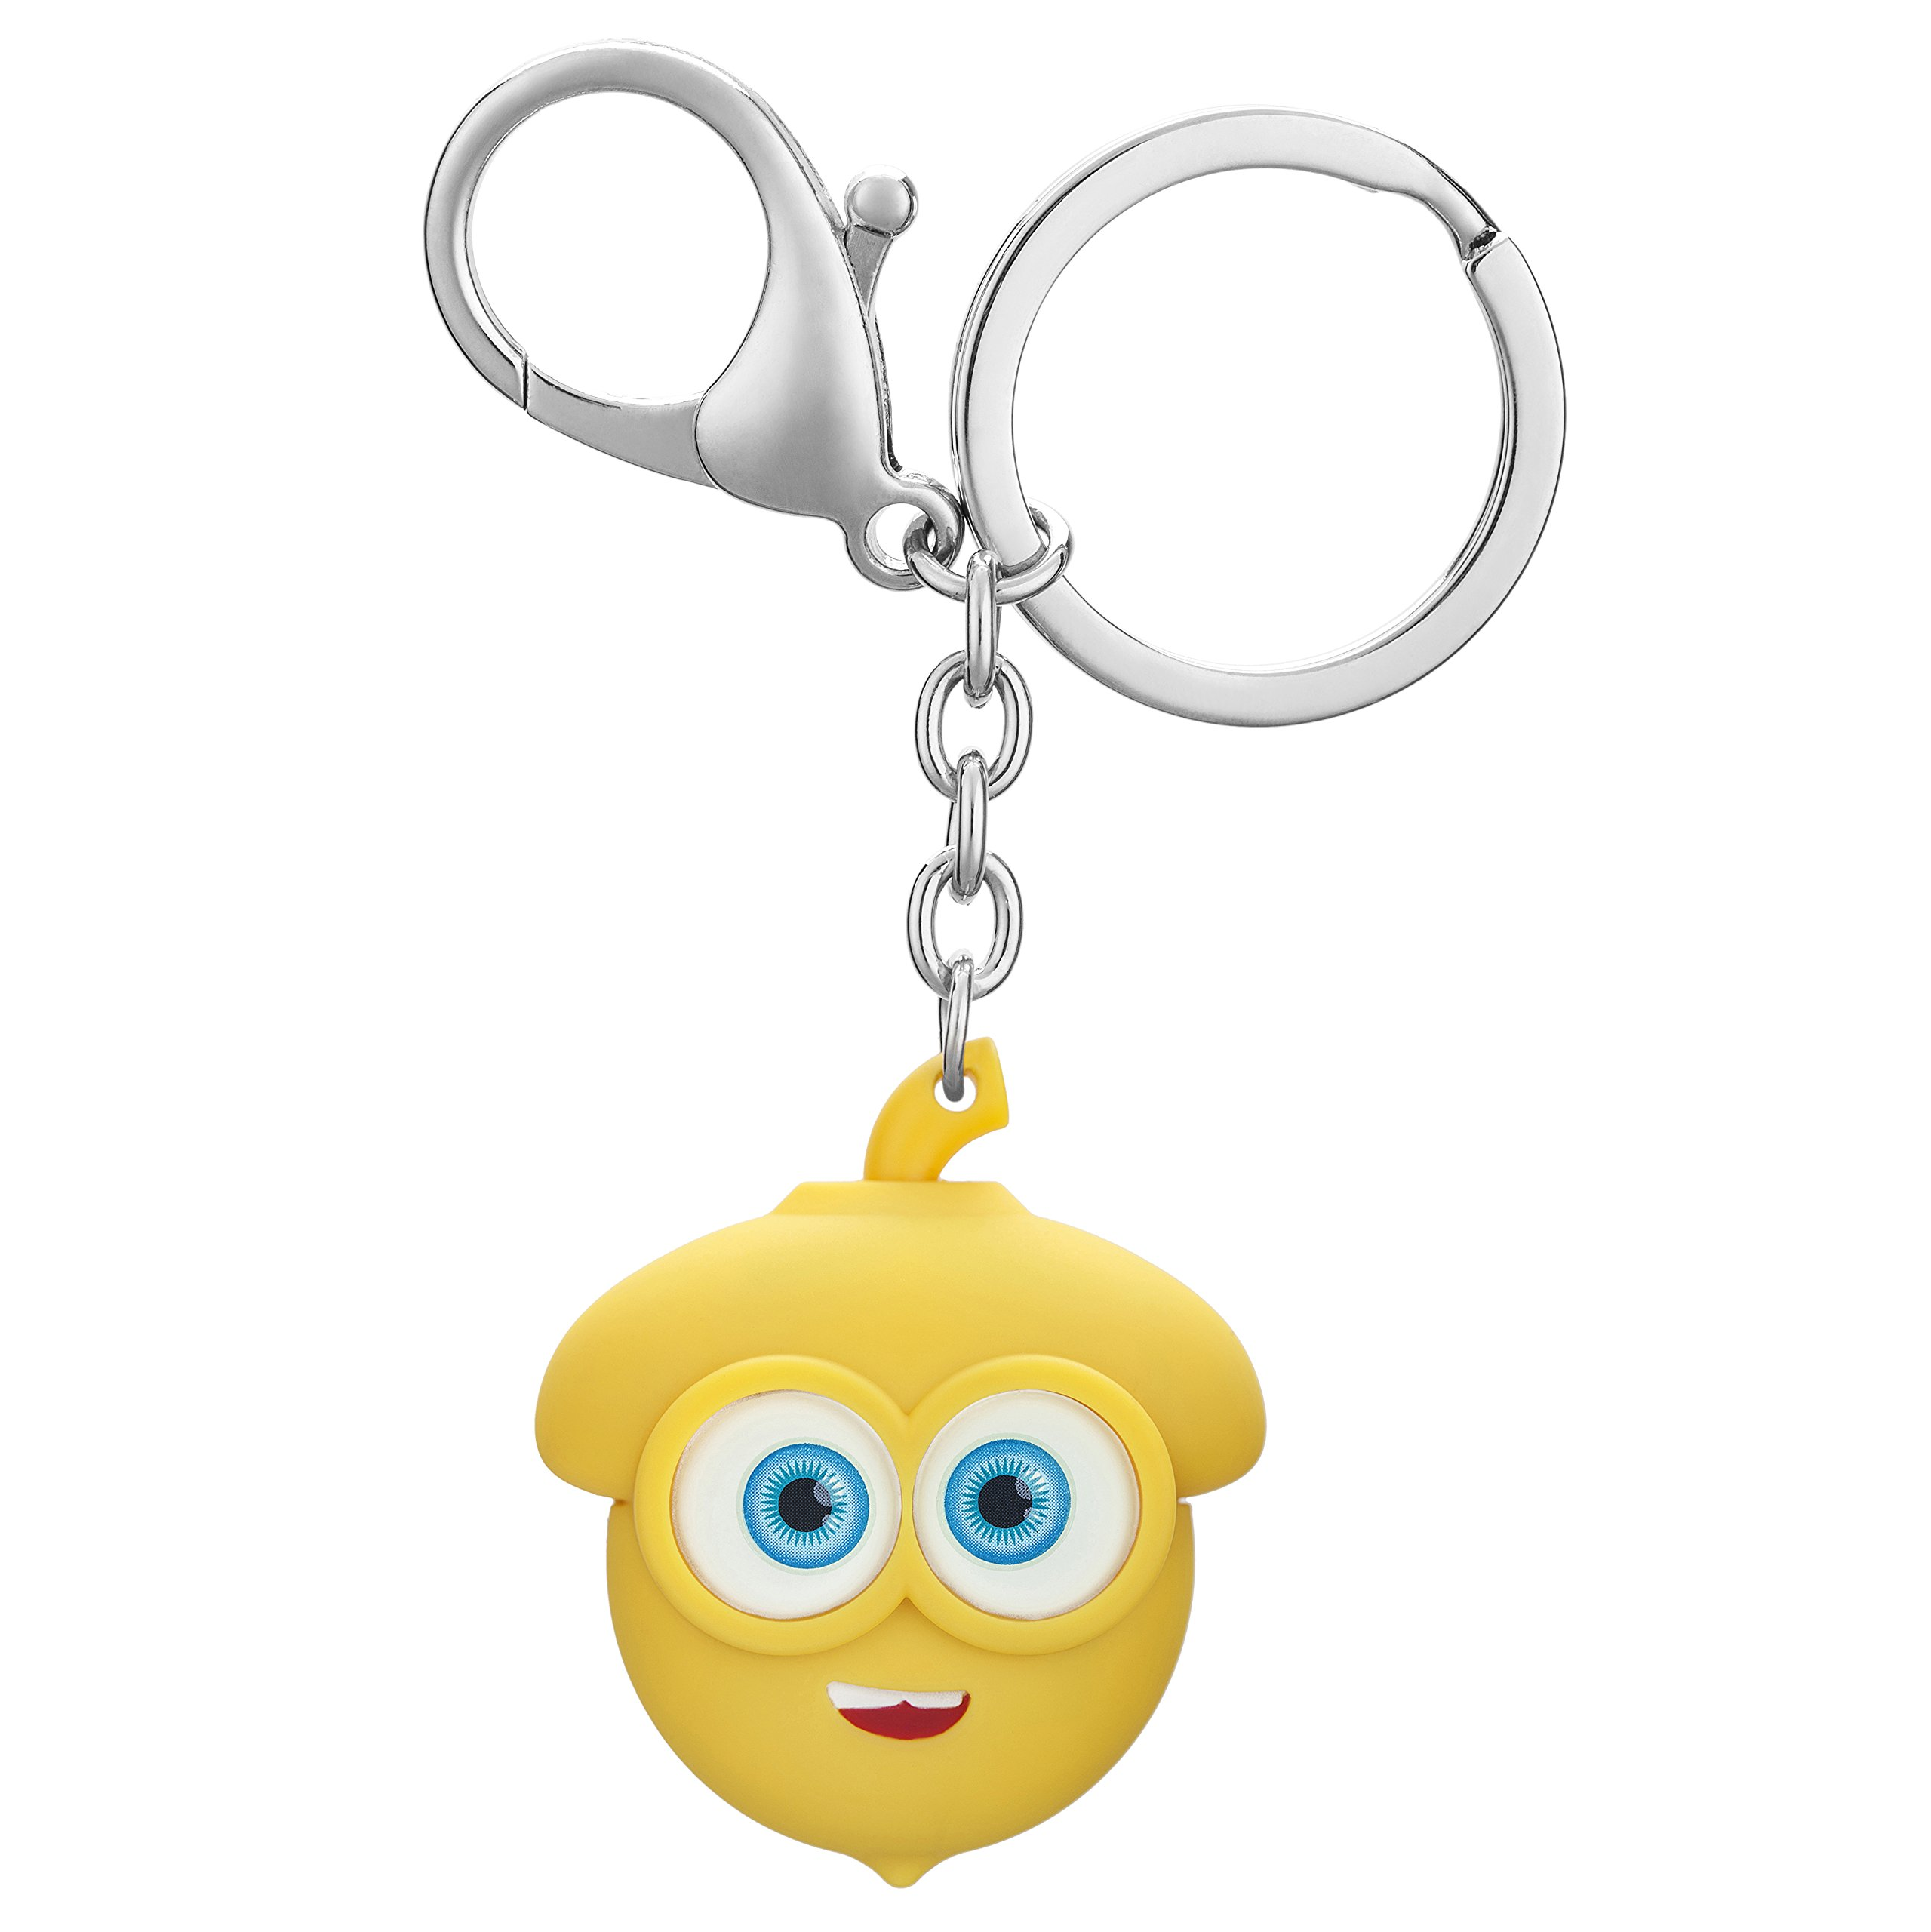 Nut Smart Keychain - The specialist Bluetooth key finder and phone finder, disconnection alarm make the key easy find never forget.